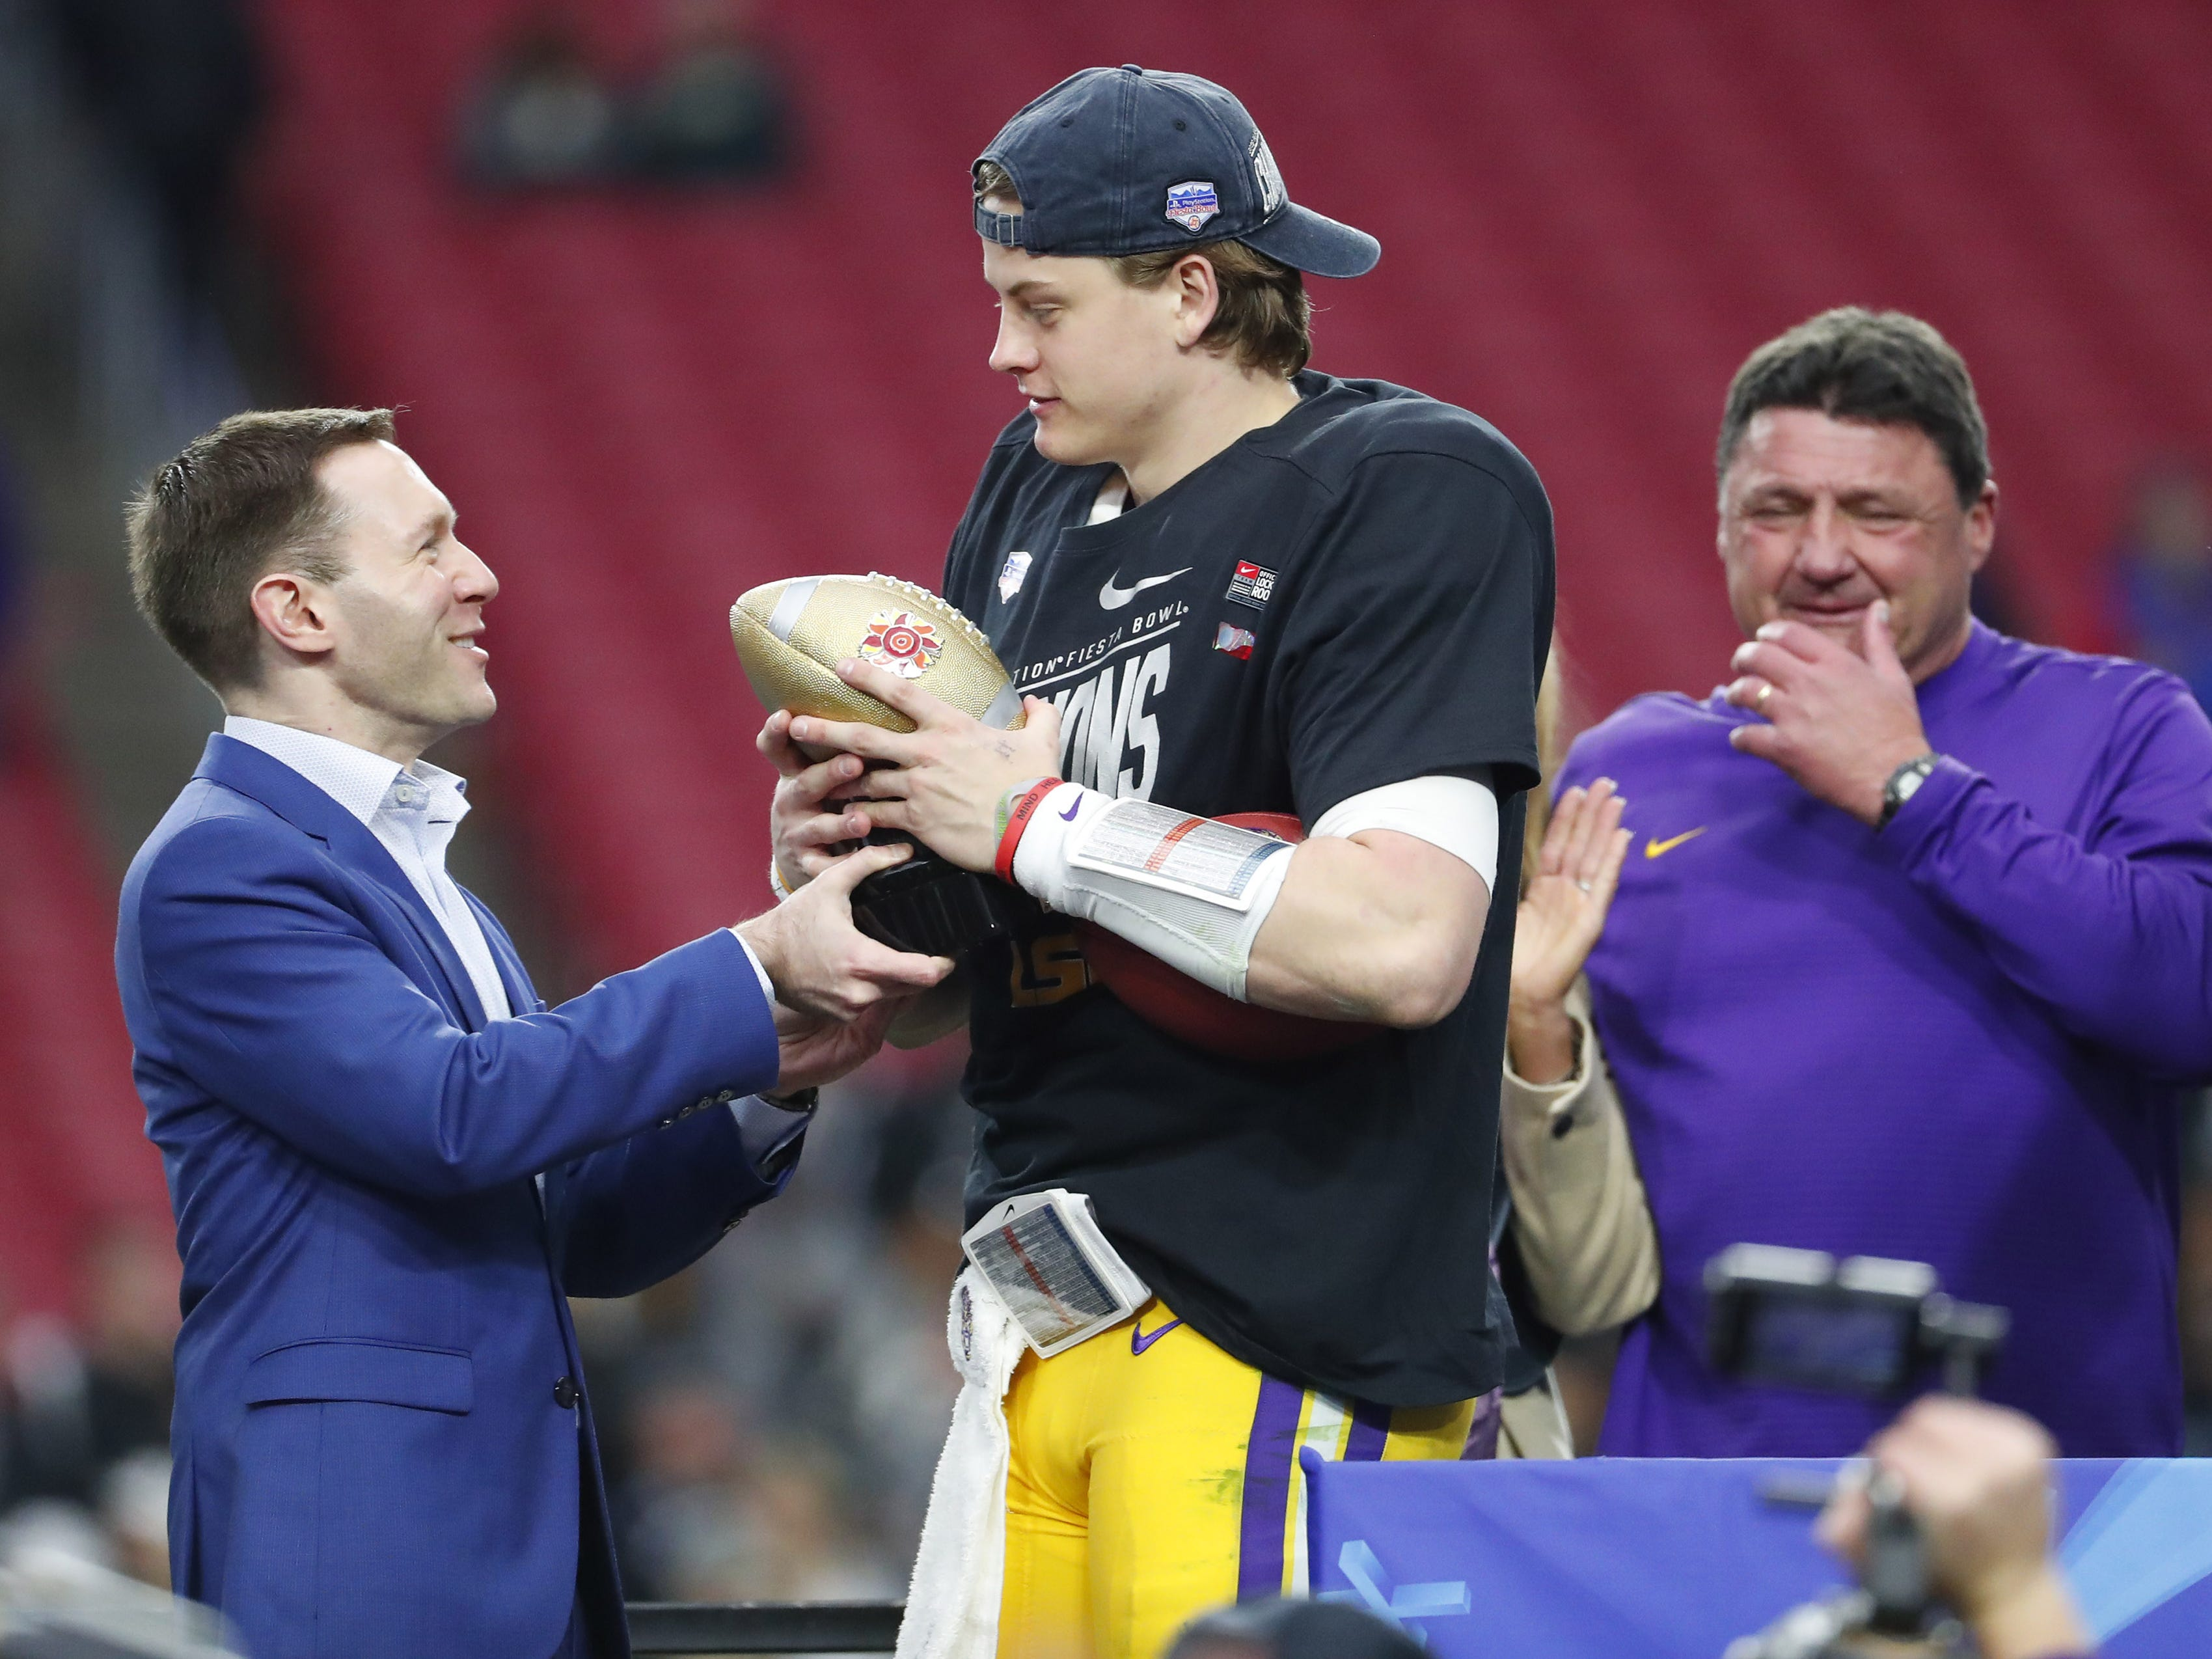 LSU quarterback Joe Burrow accepts the offensive player of the game after winning the Fiesta Bowl in Glendale January 1, 2019. LSU beat UCF 40-32.